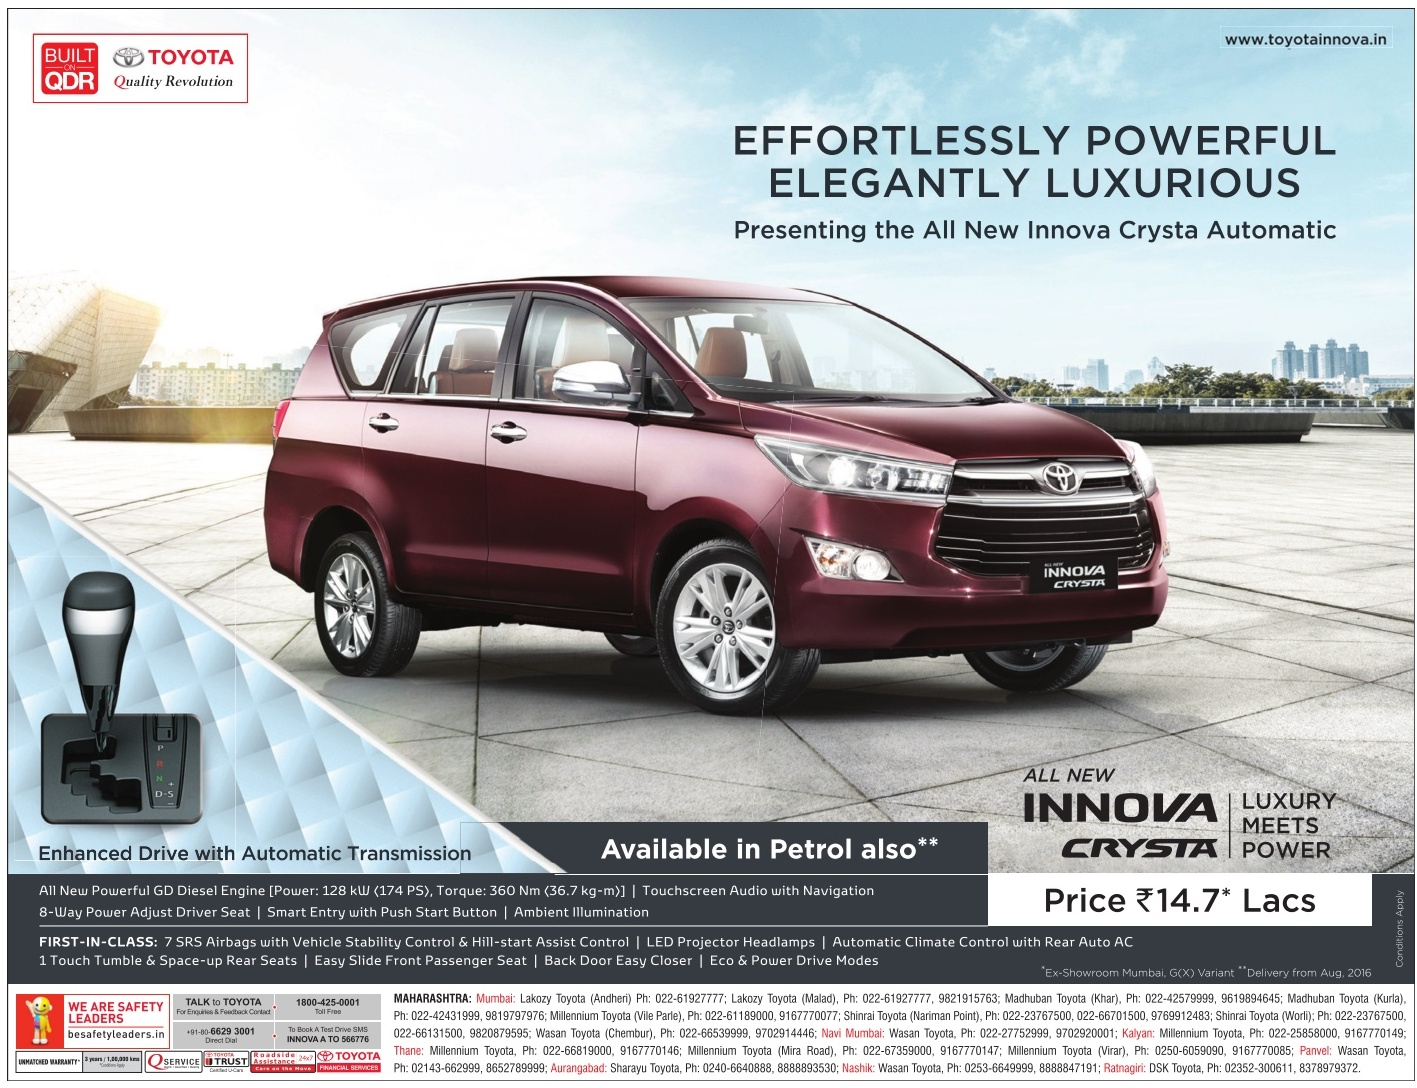 all new kijang innova crysta grand avanza 2015 toyota petrol officially announced for india